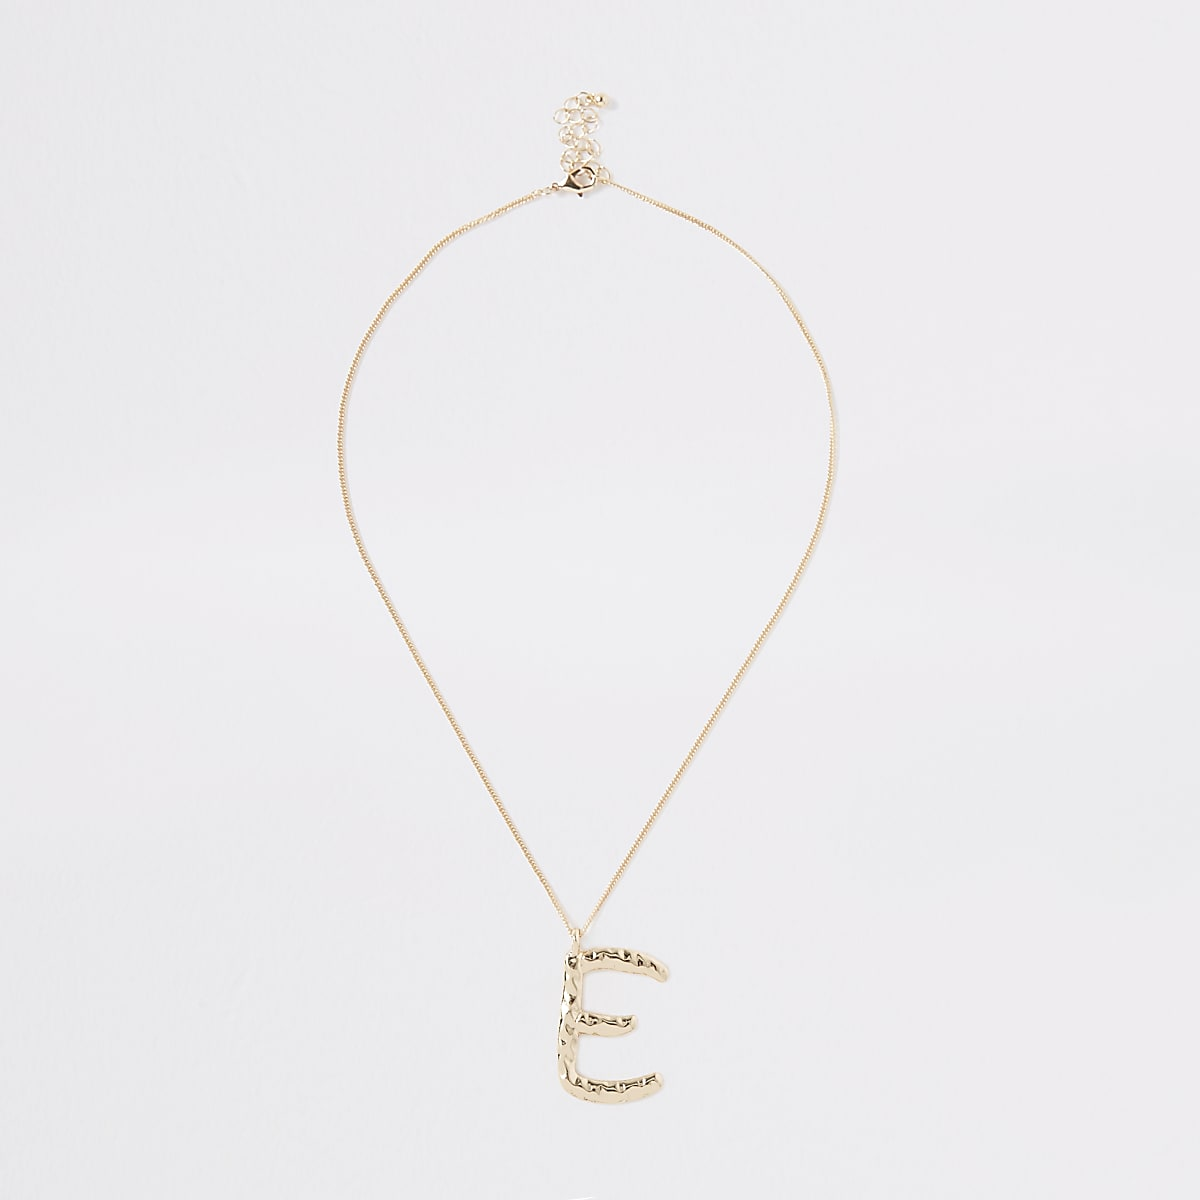 Gold color large initial 'E' necklace